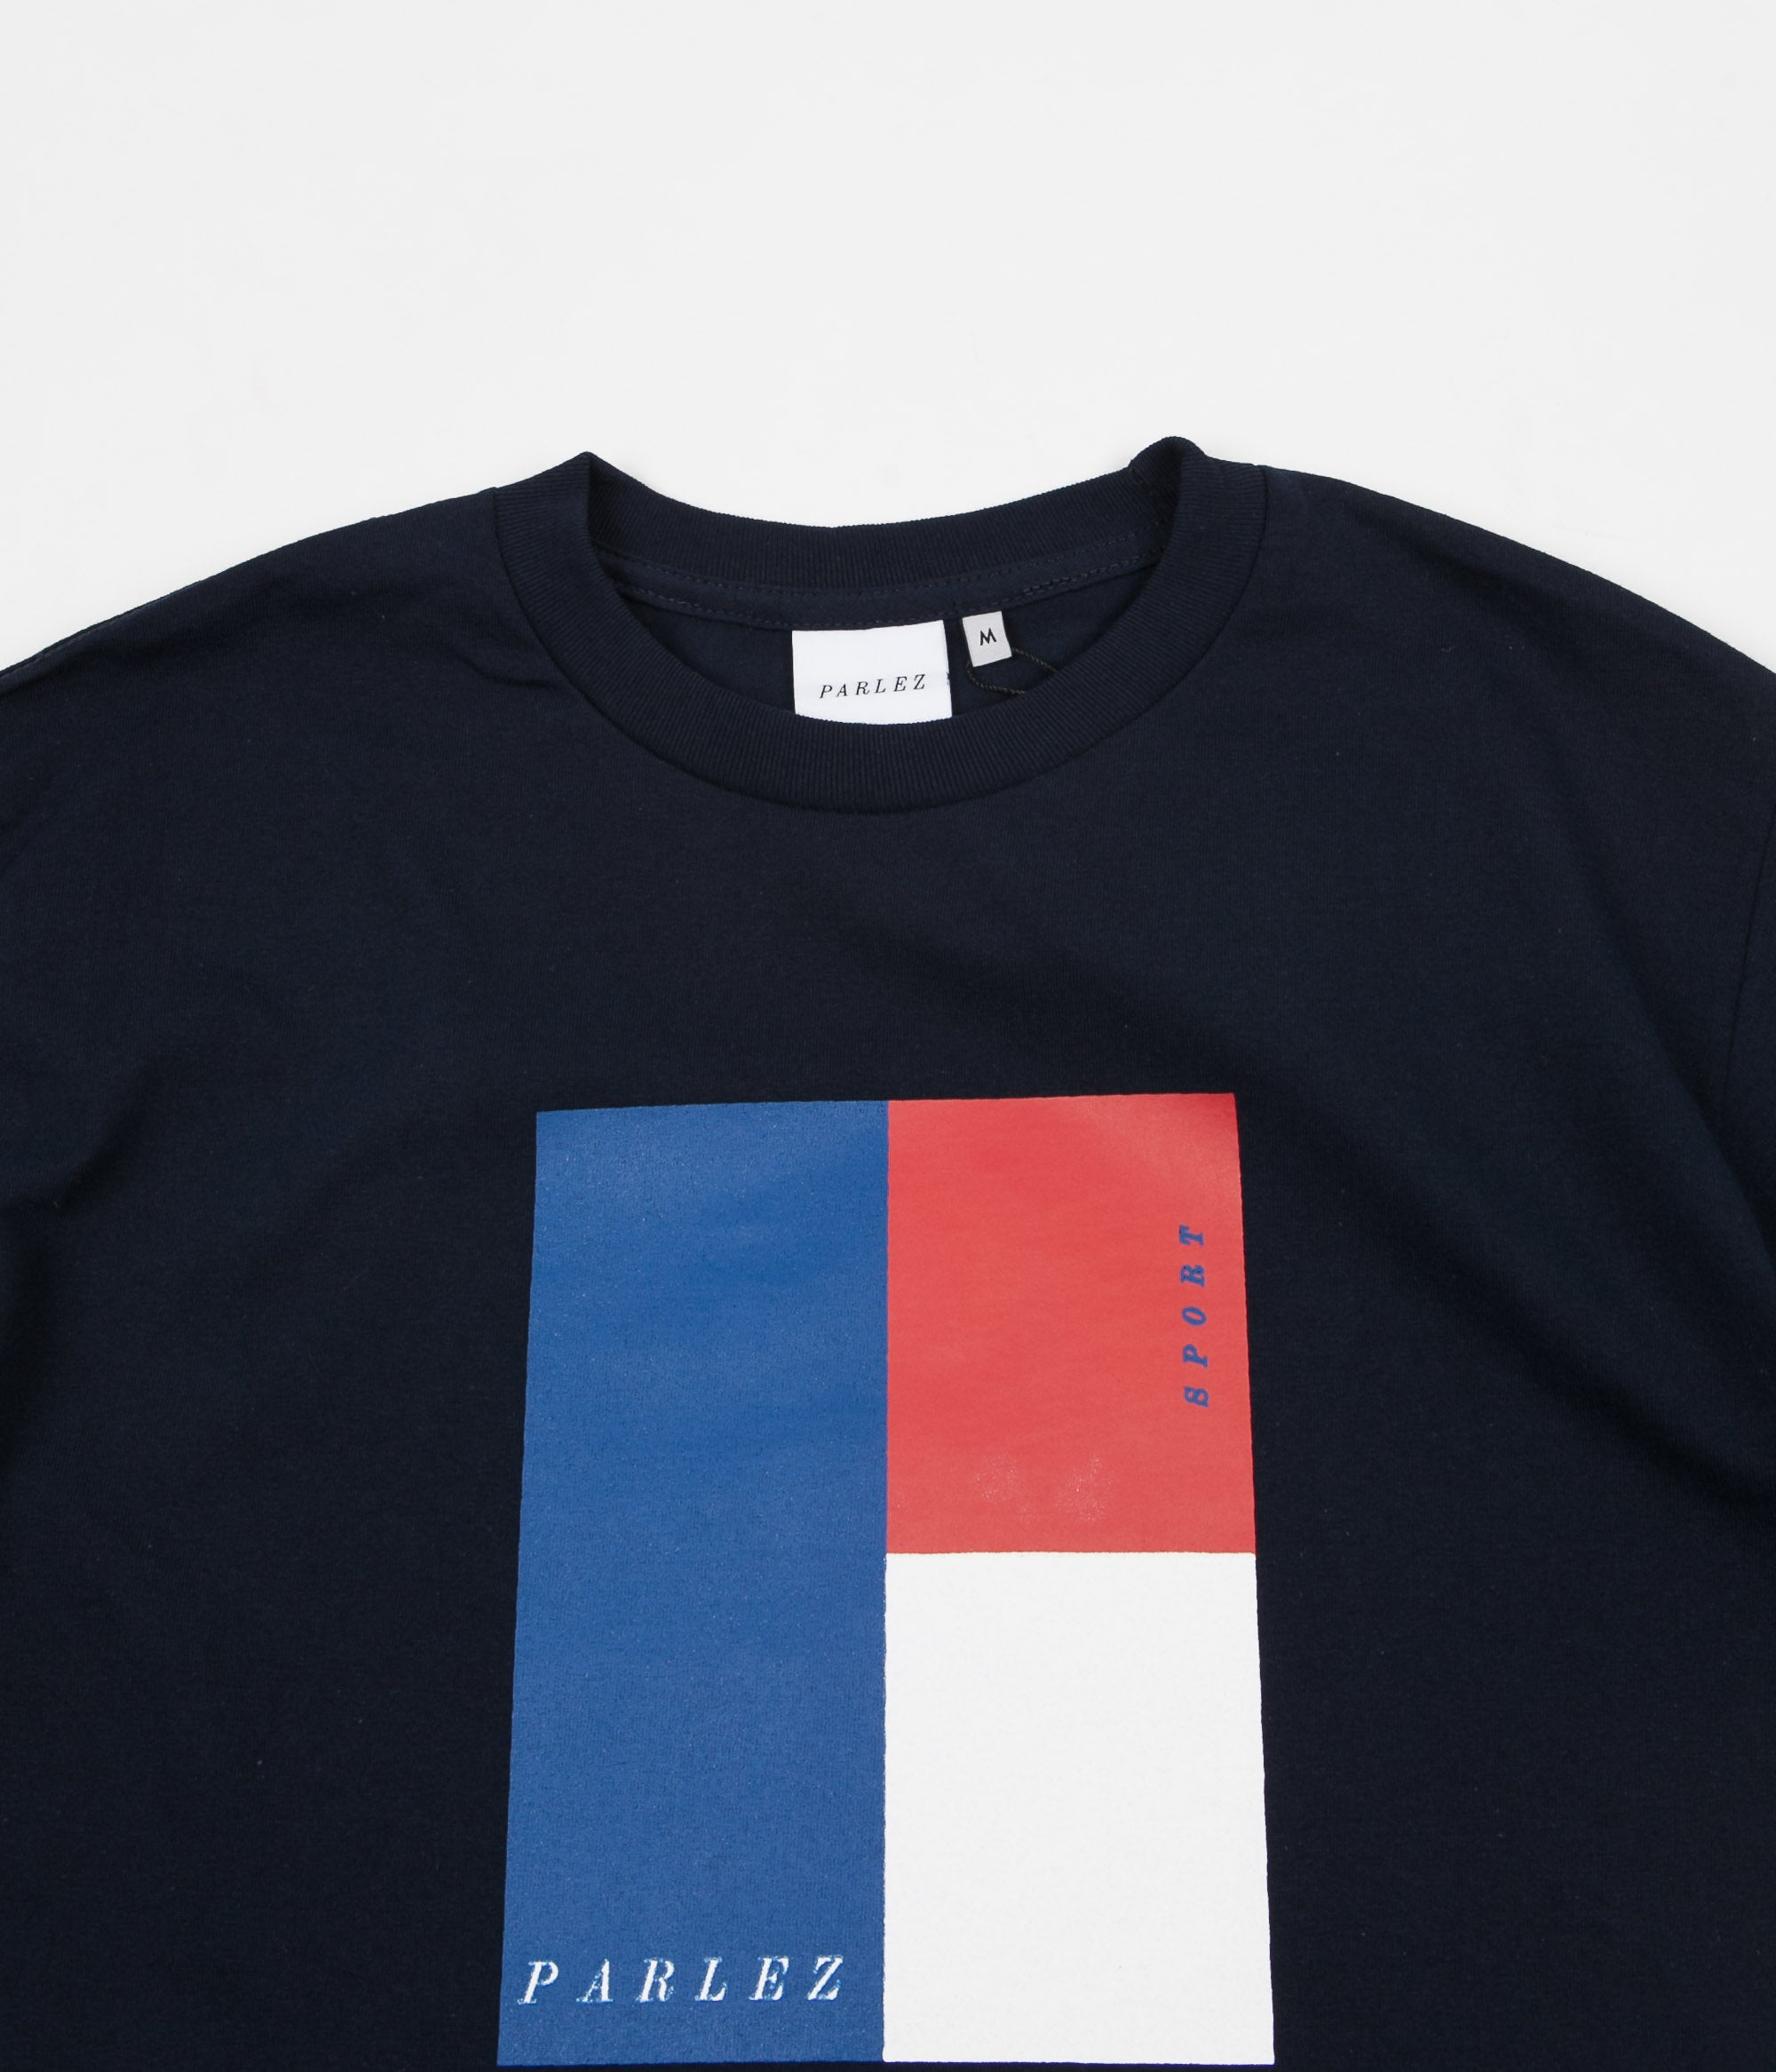 Parlez Court T-Shirt - Navy